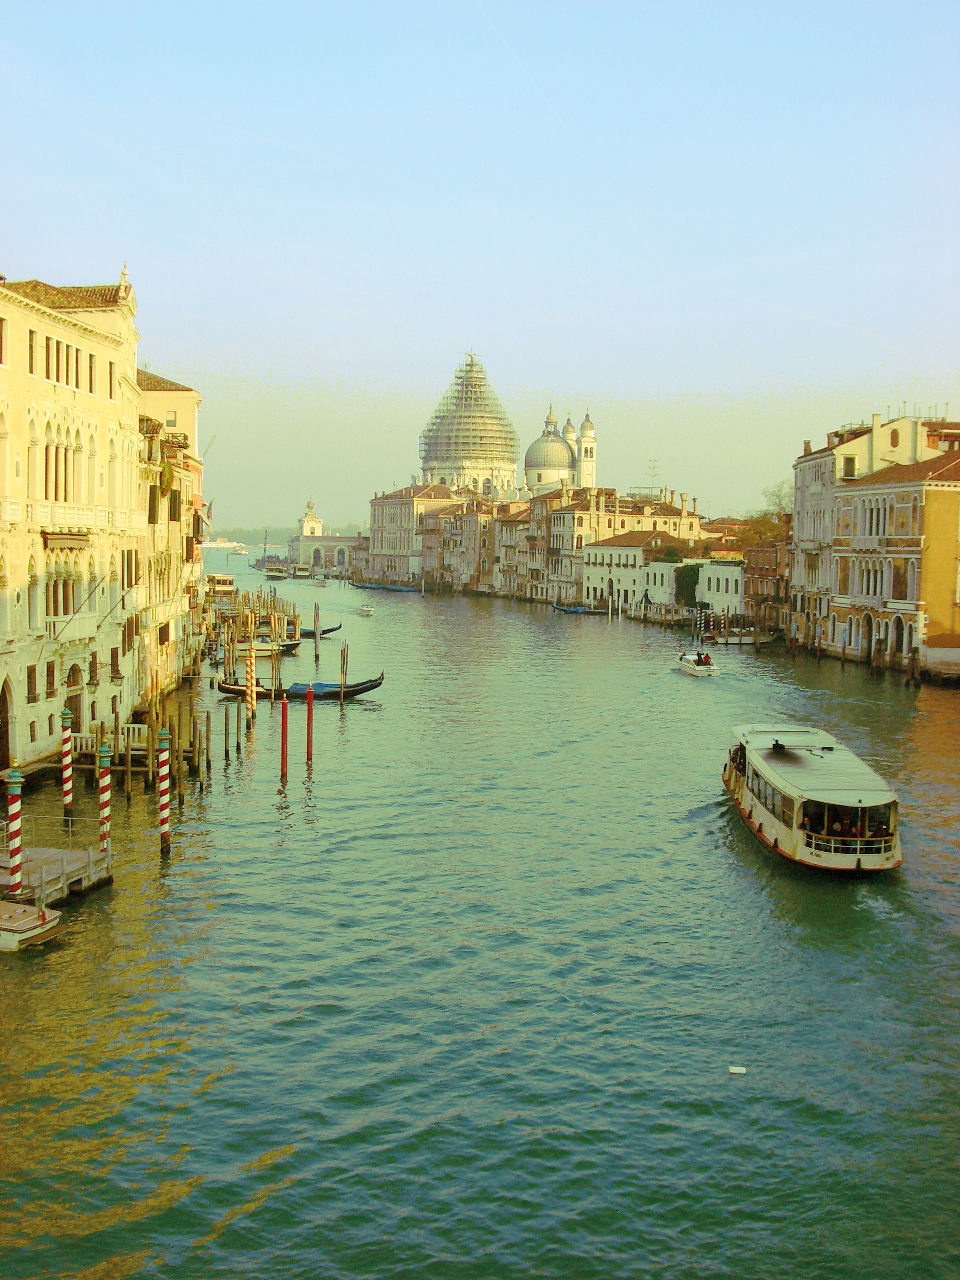 Venice Full Face Black Mirror Mask: Venice Wallpapers High Quality